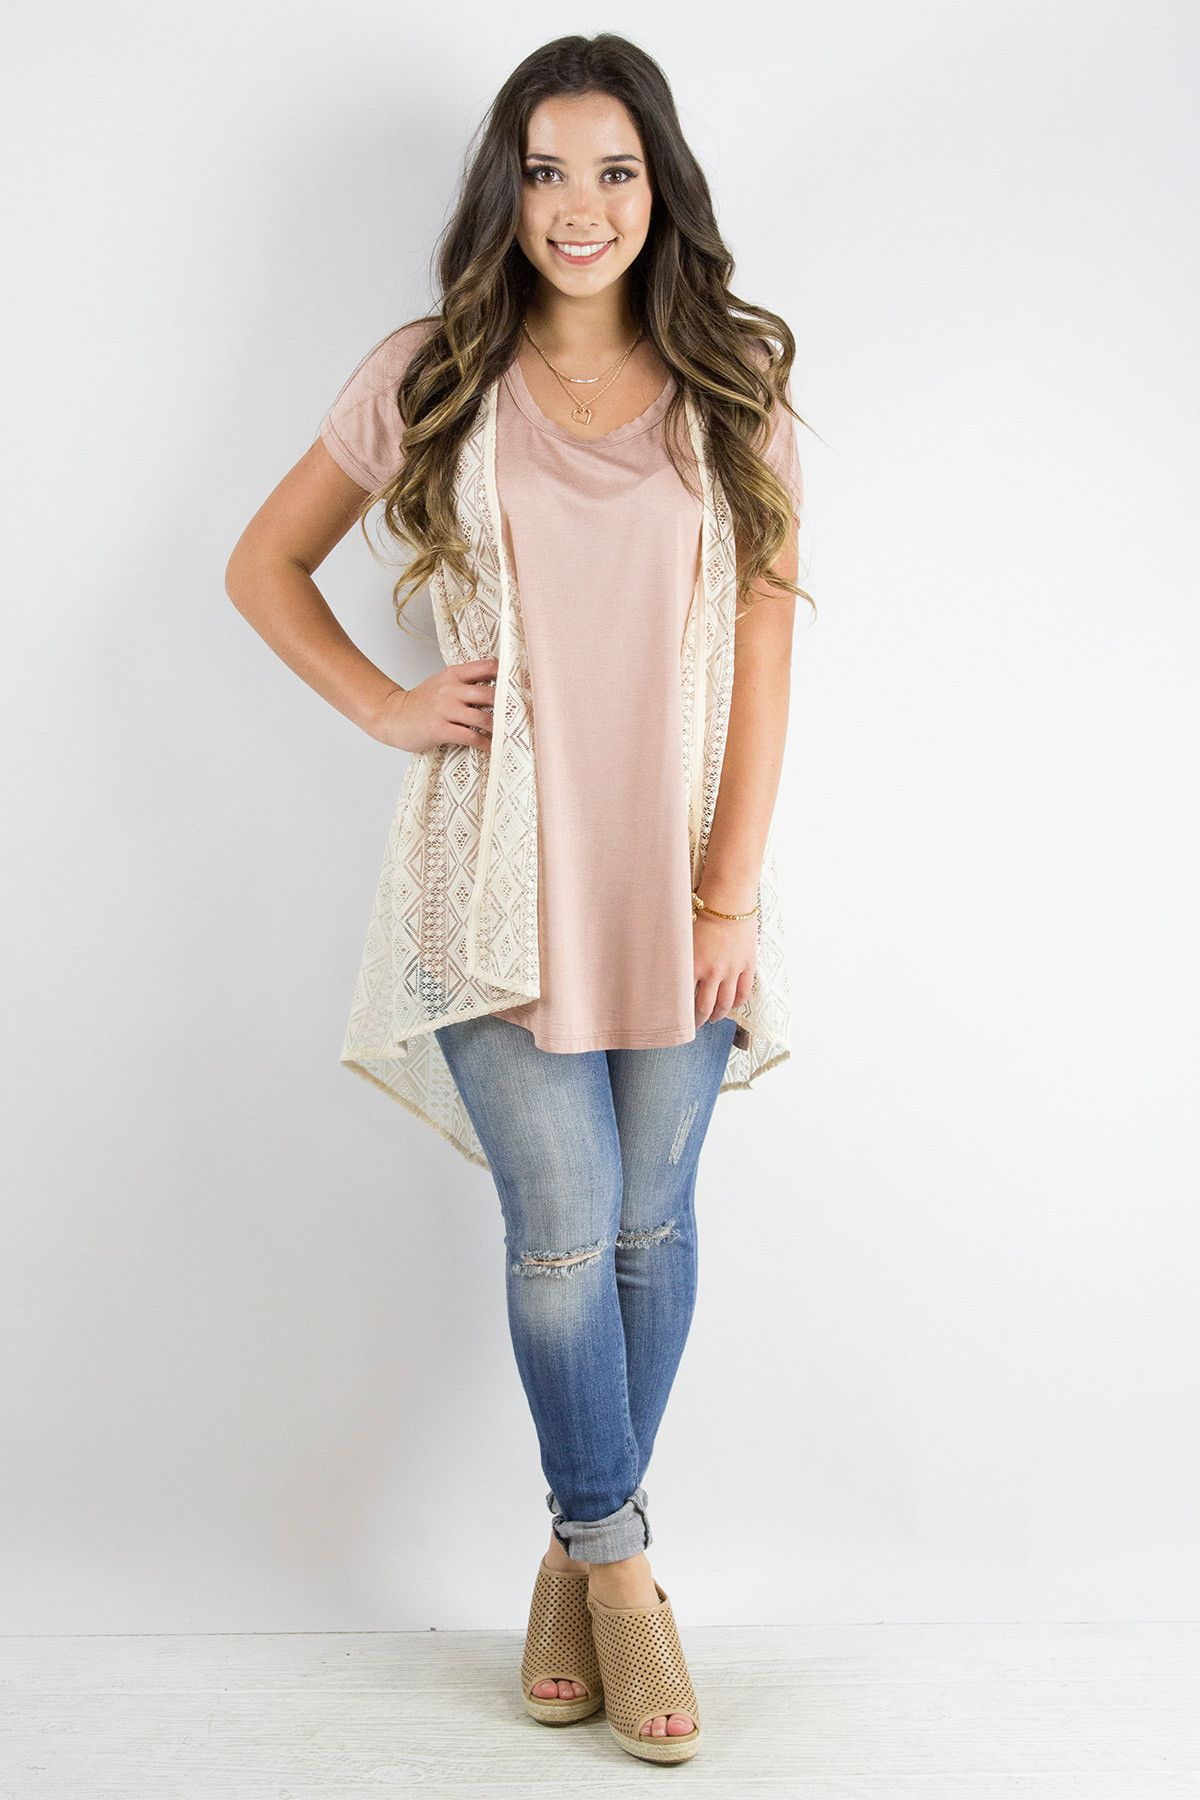 This sleeveless lace cardigan is perfect over just about anything ...